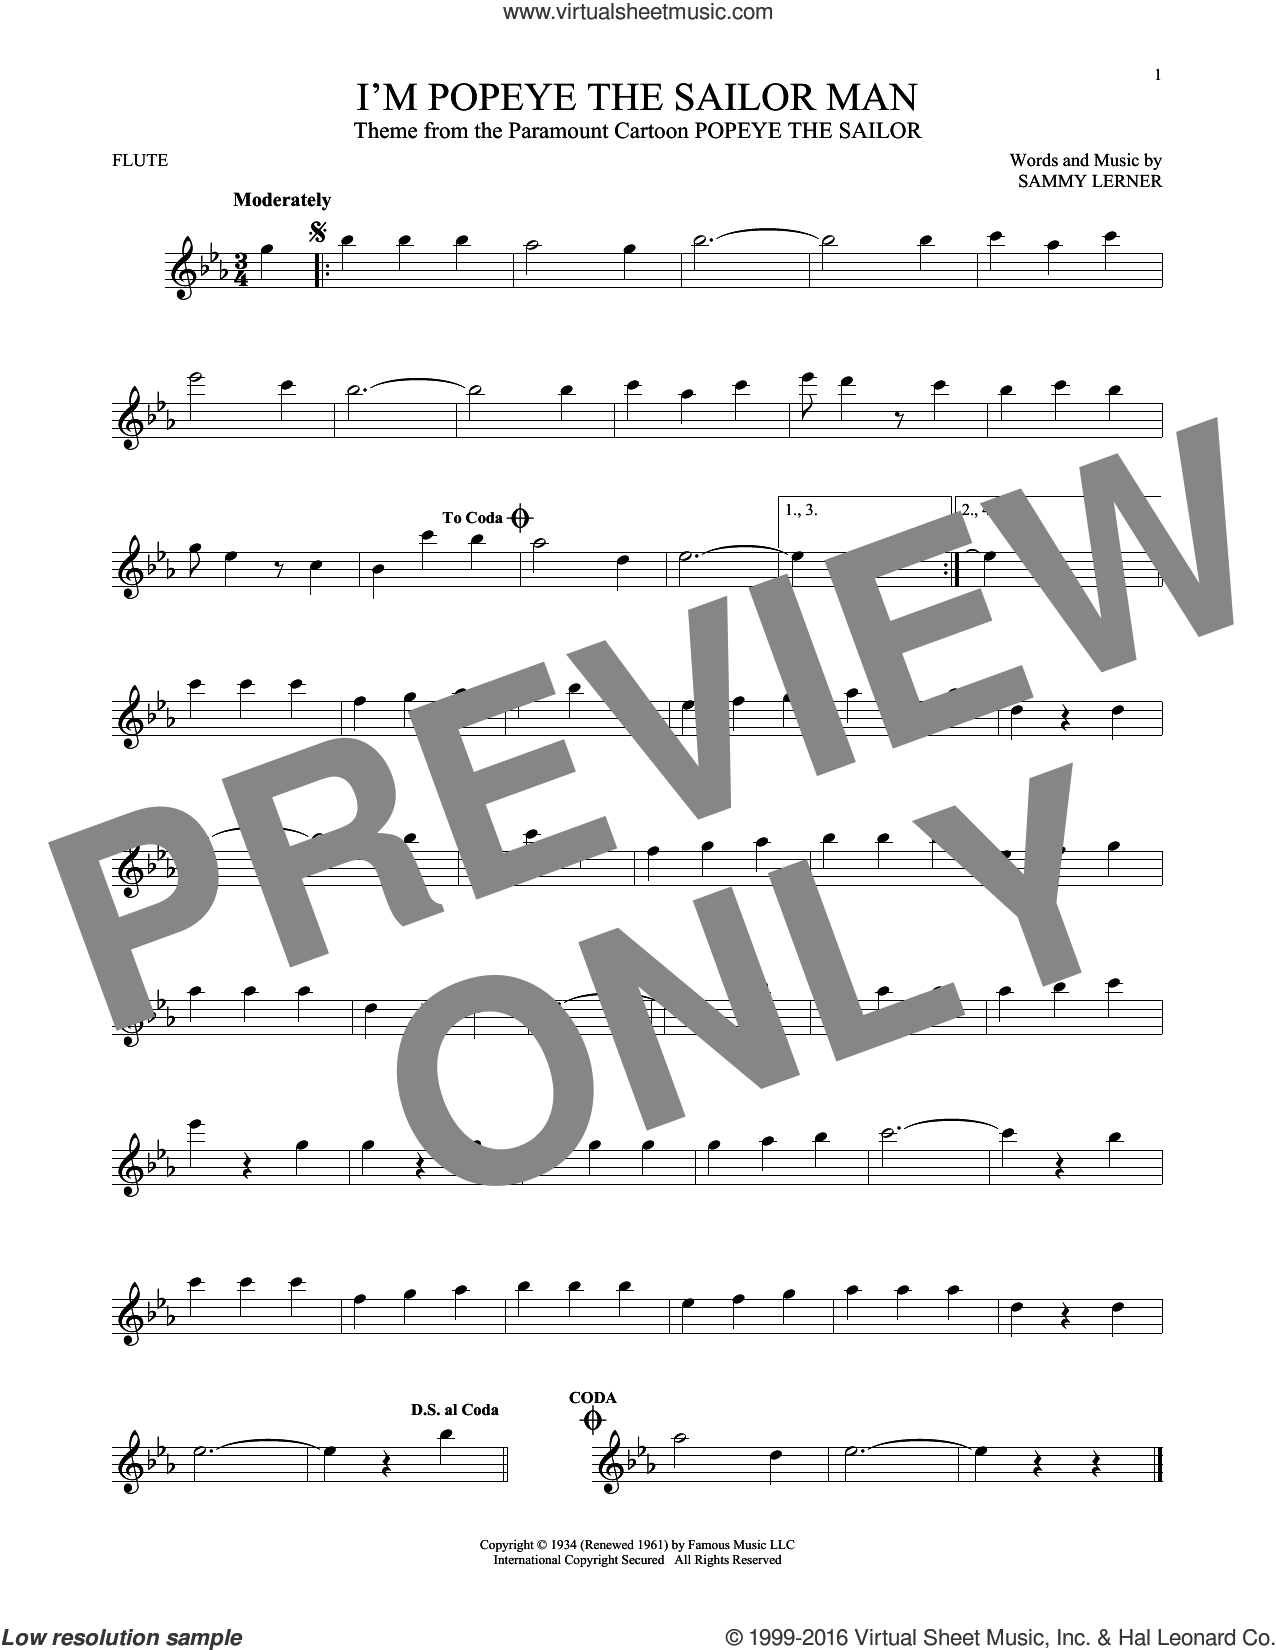 I'm Popeye The Sailor Man sheet music for flute solo by Sammy Lerner, intermediate skill level